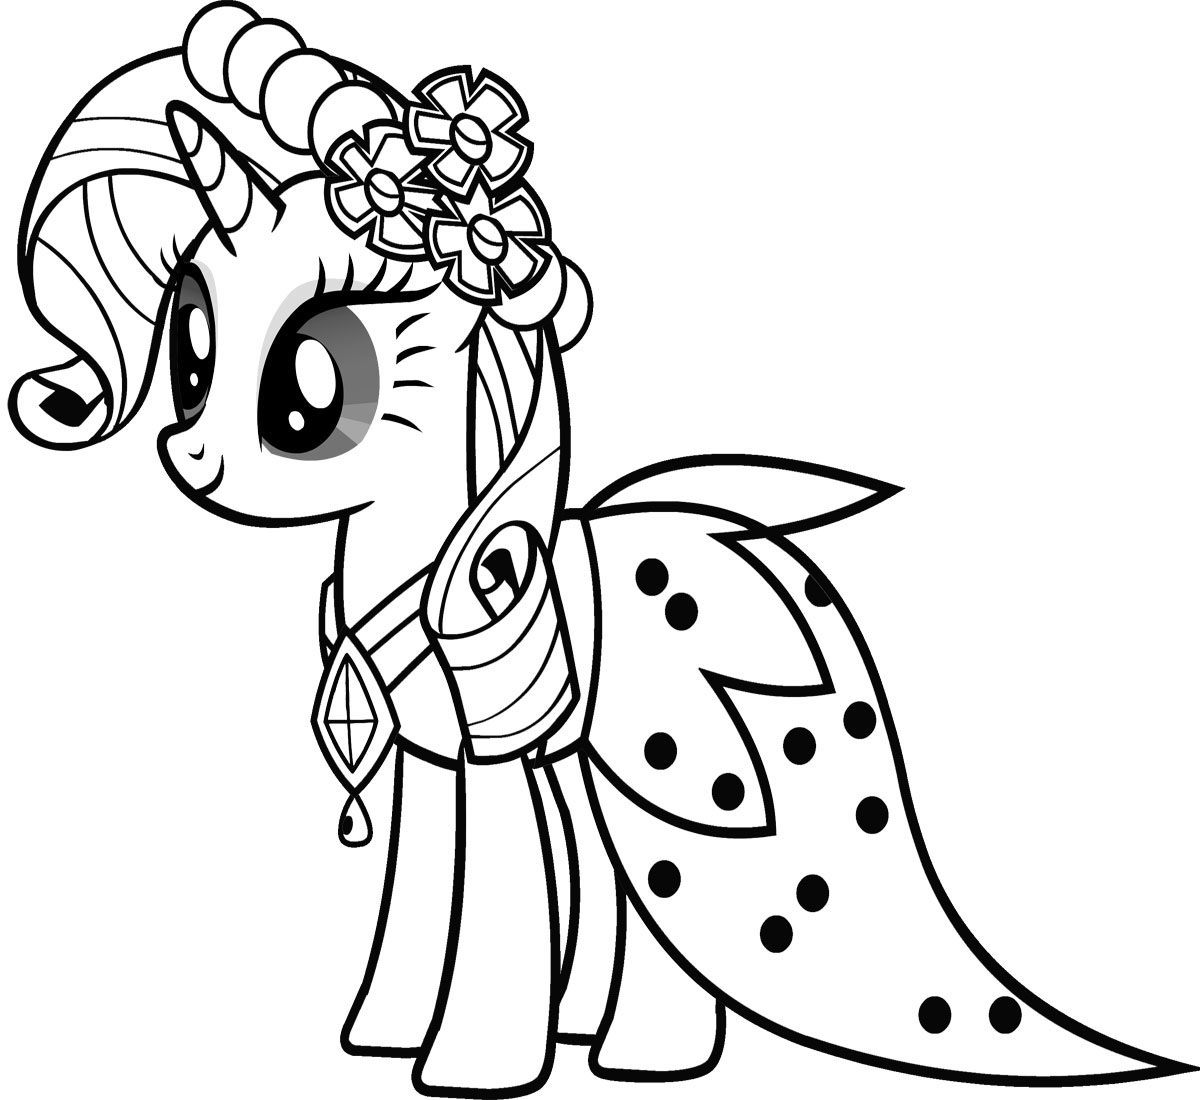 My little pony unicorn coloring pages - My Little Pony Unicorn Coloring Pages 50